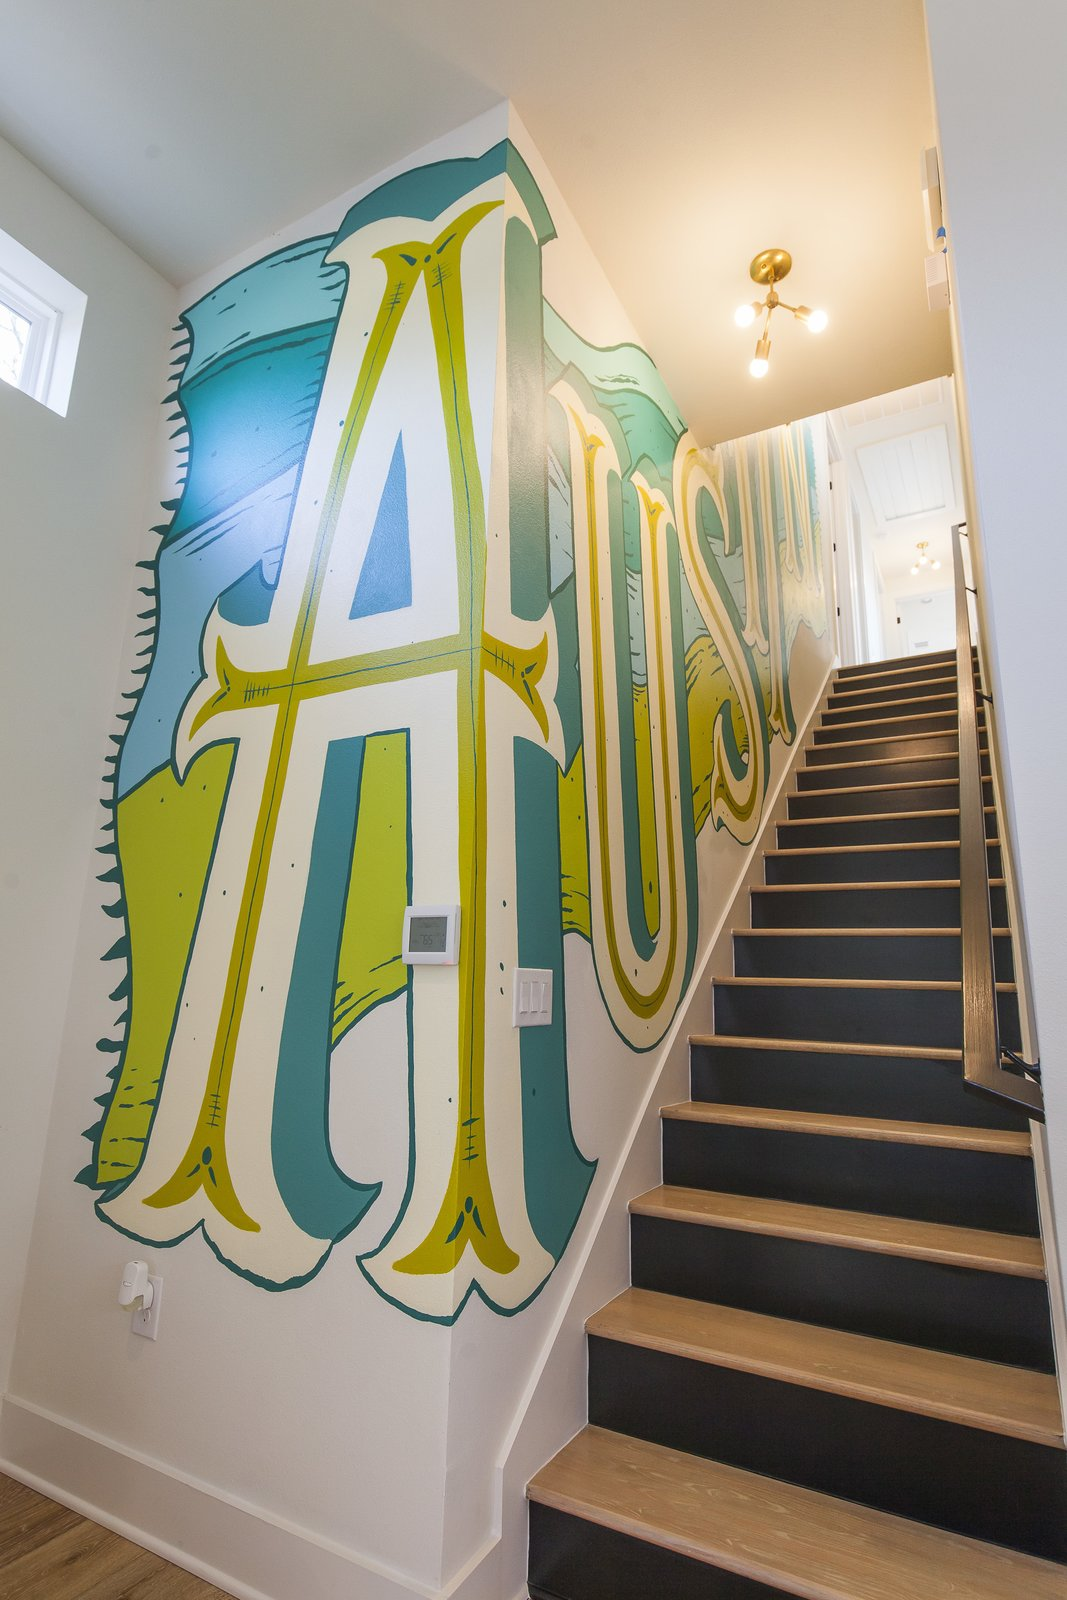 Staircase, Metal Railing, and Wood Tread Unit A - Stairwell - This is the custom mural we had designed for the staircase to keep things interesting but also invite some good ole' Austin charm into the house.  The Reyes Duplex